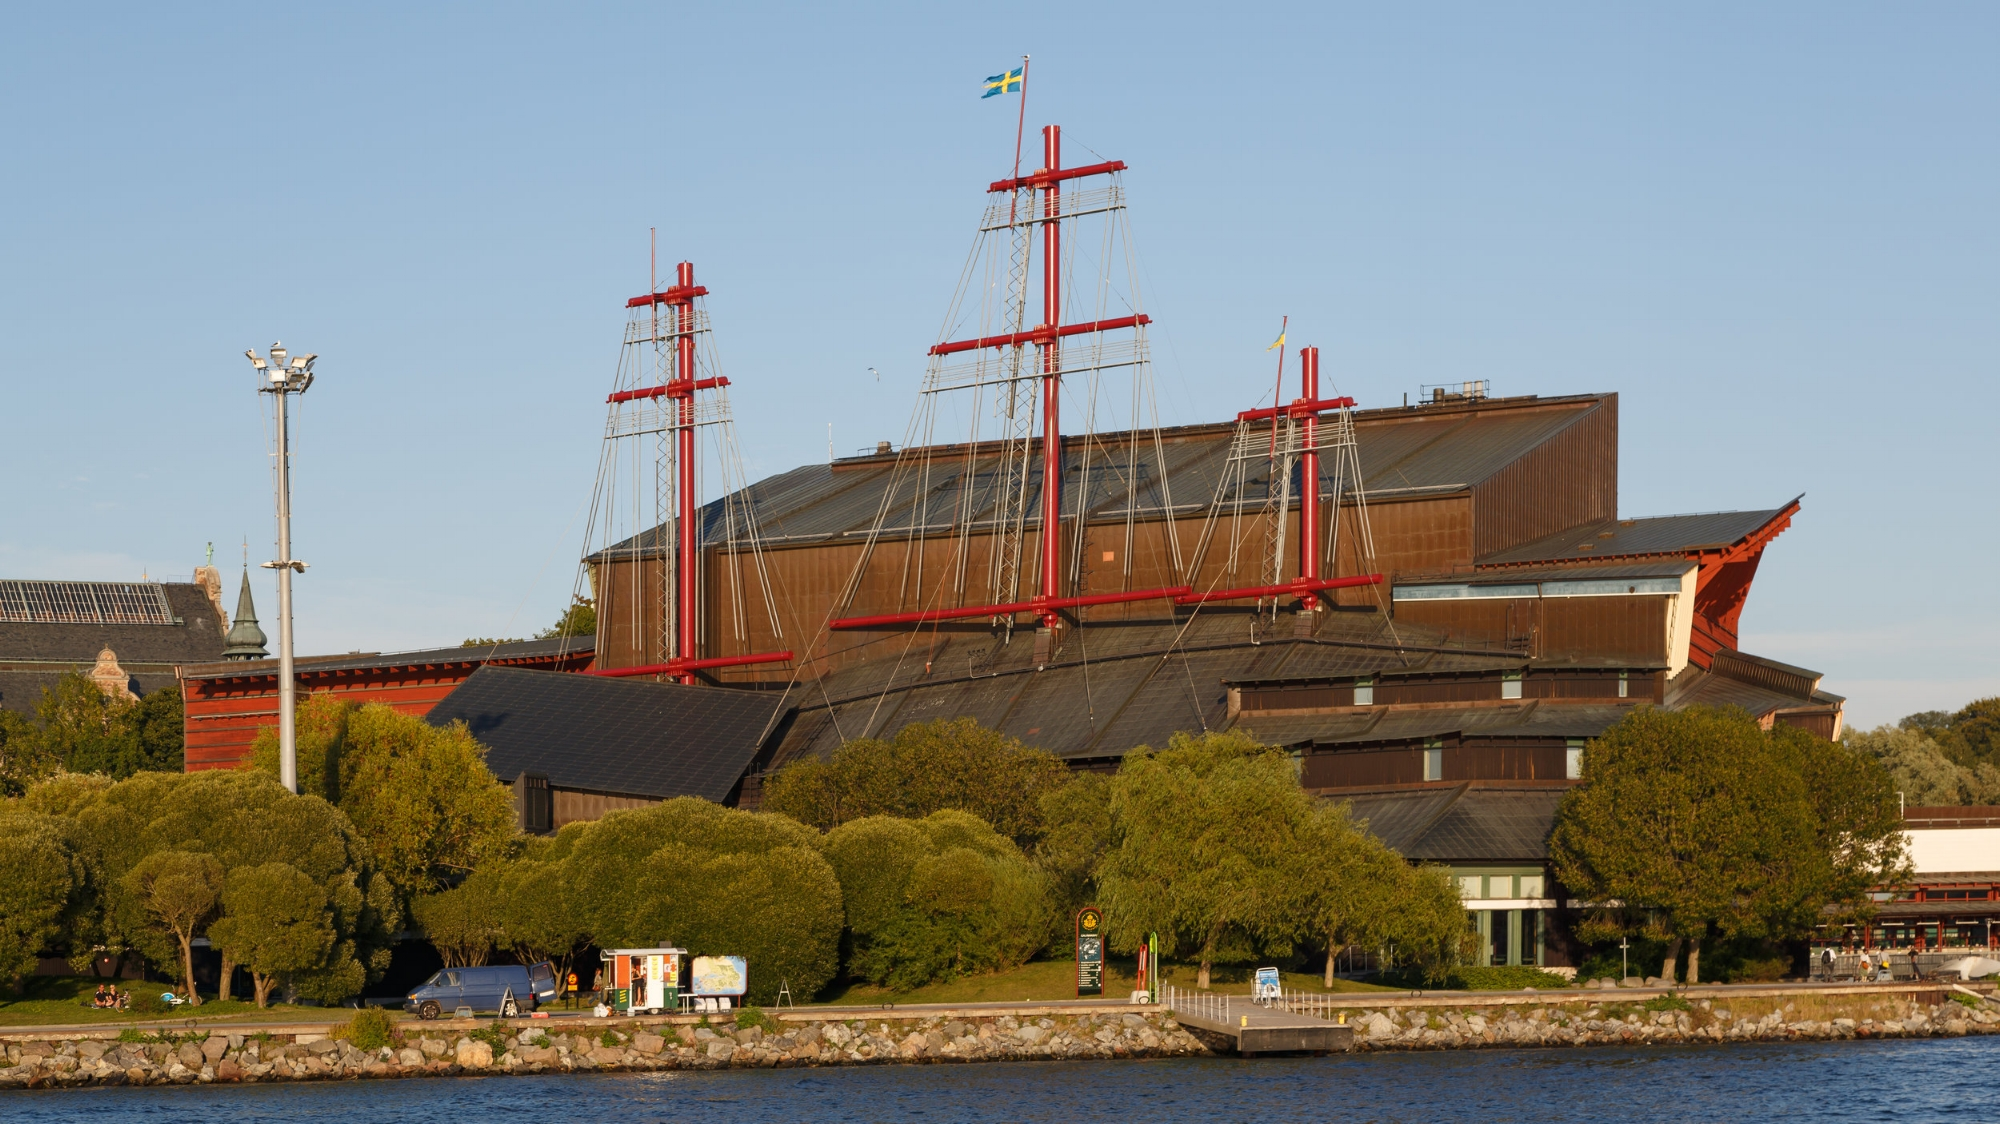 Vasa Museum. This warship sunk soon after it set sail in the 1600s. The upside for us is we can now explore this mostly intact ship.